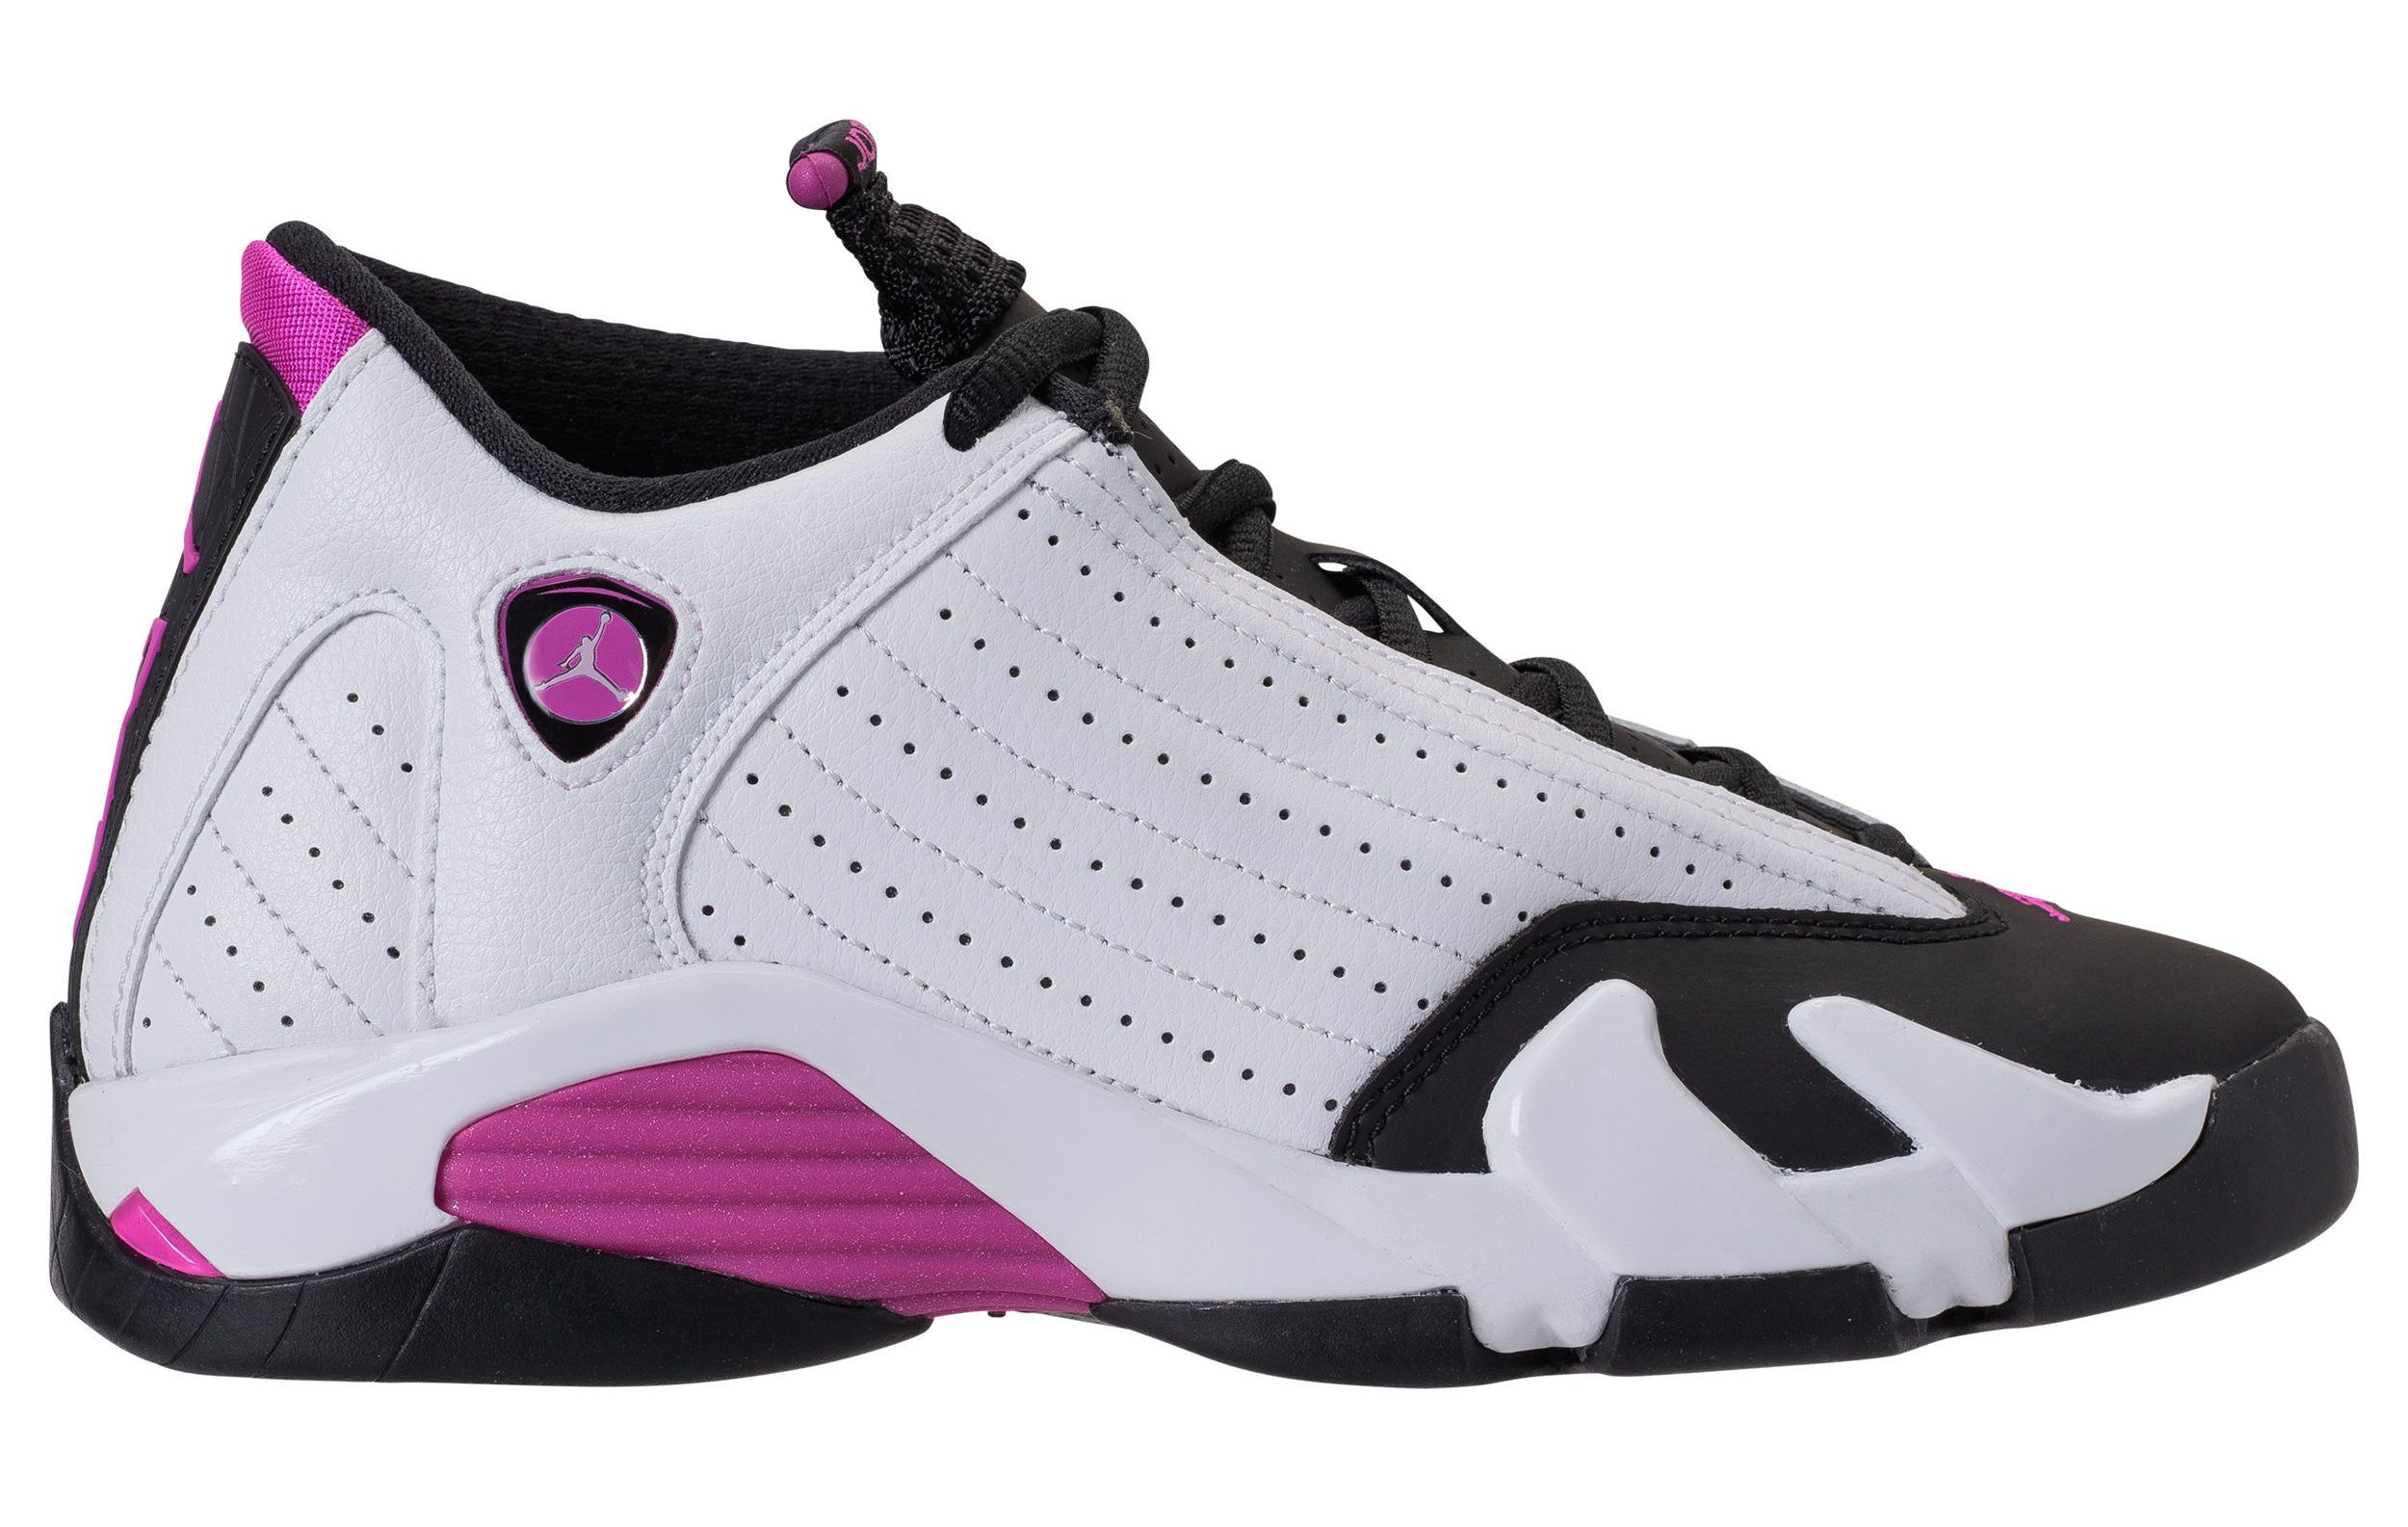 046da8371f640c Air Jordan 14 GS Fuchsia Blast Arriving This Month • KicksOnFire.com